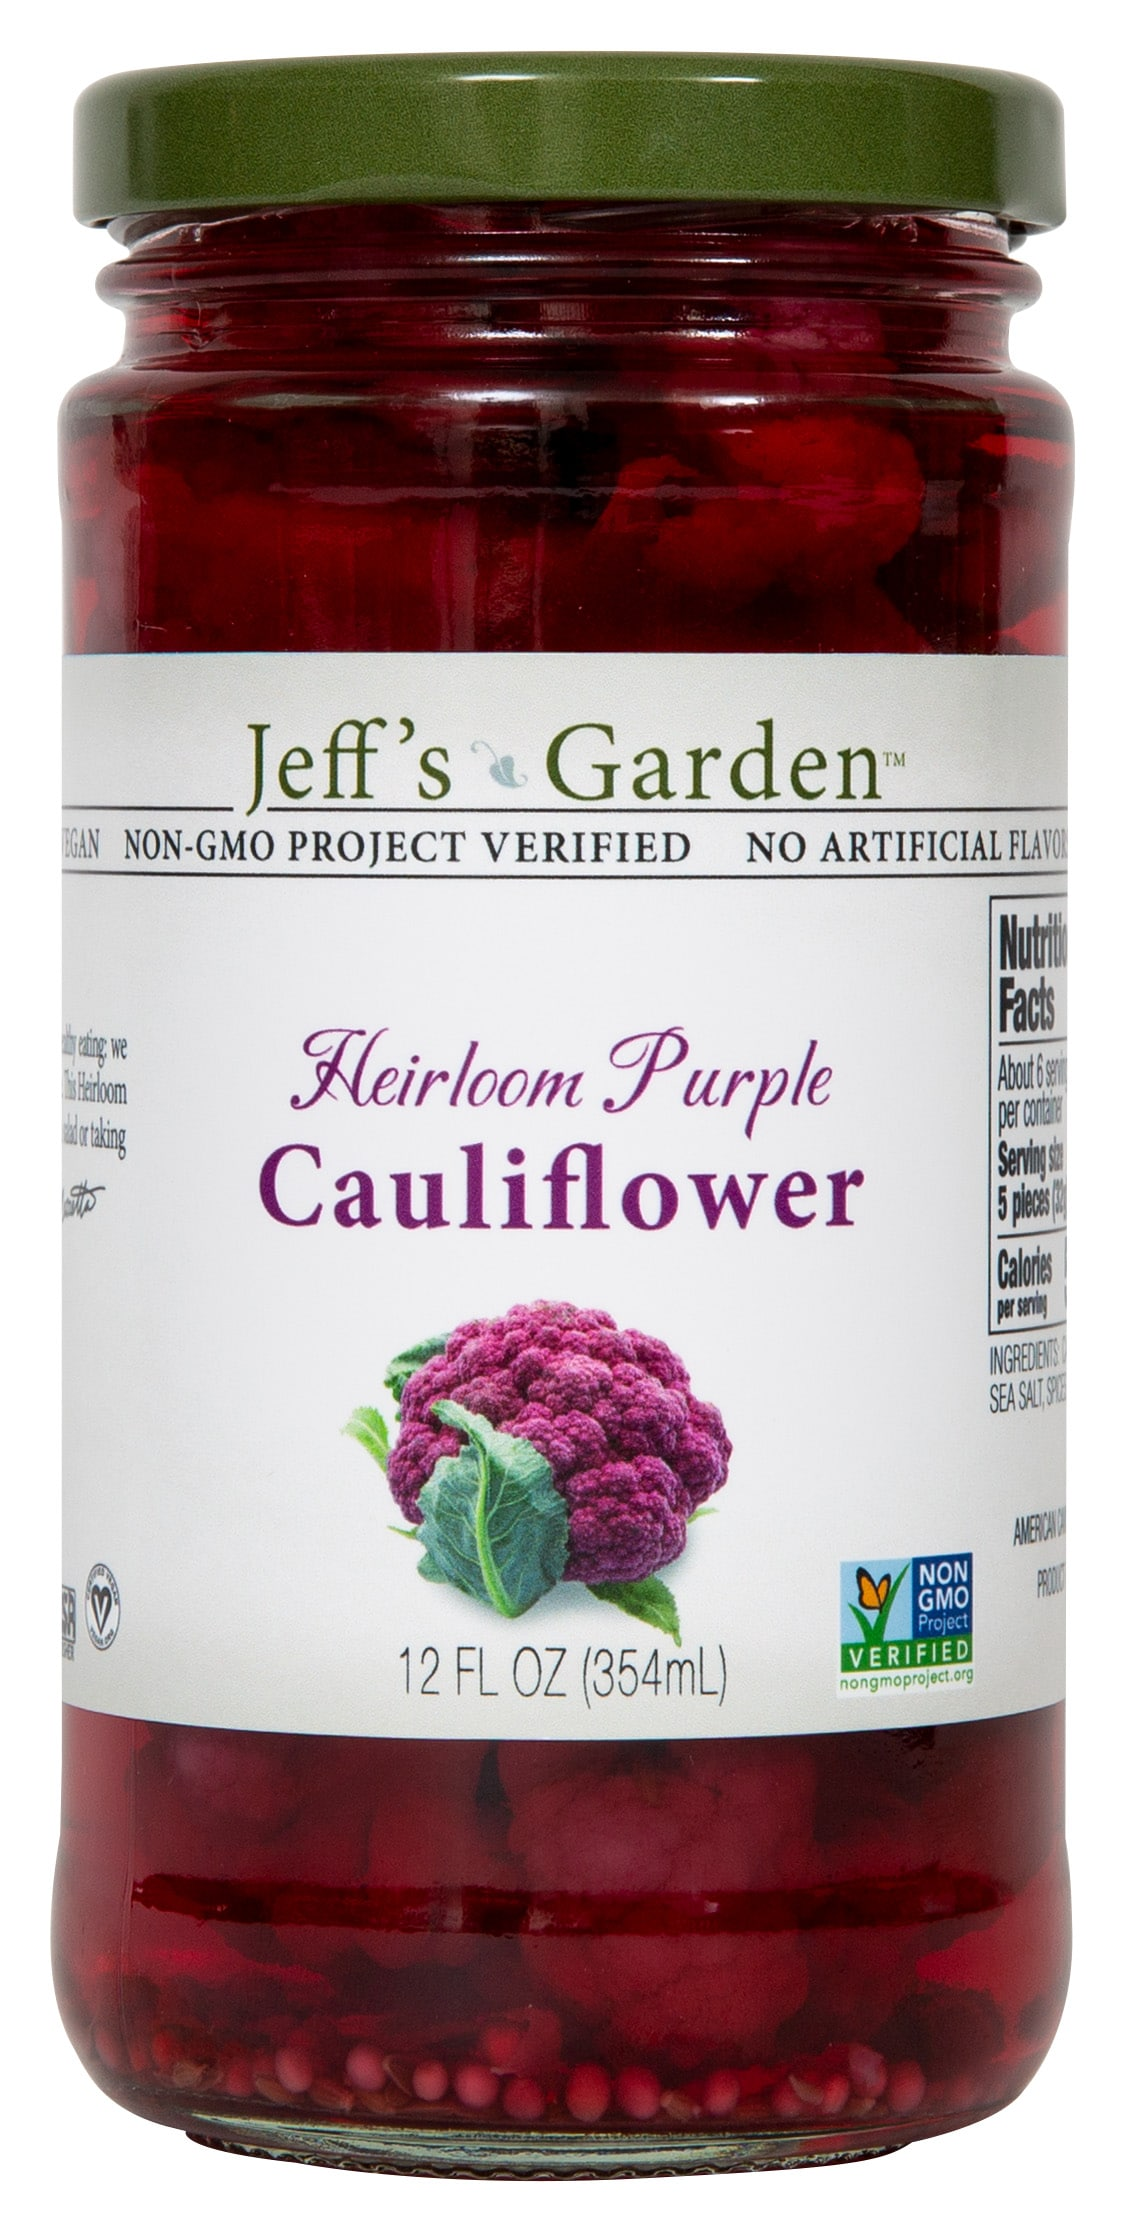 Jeff's Garden Launches Four New Offerings